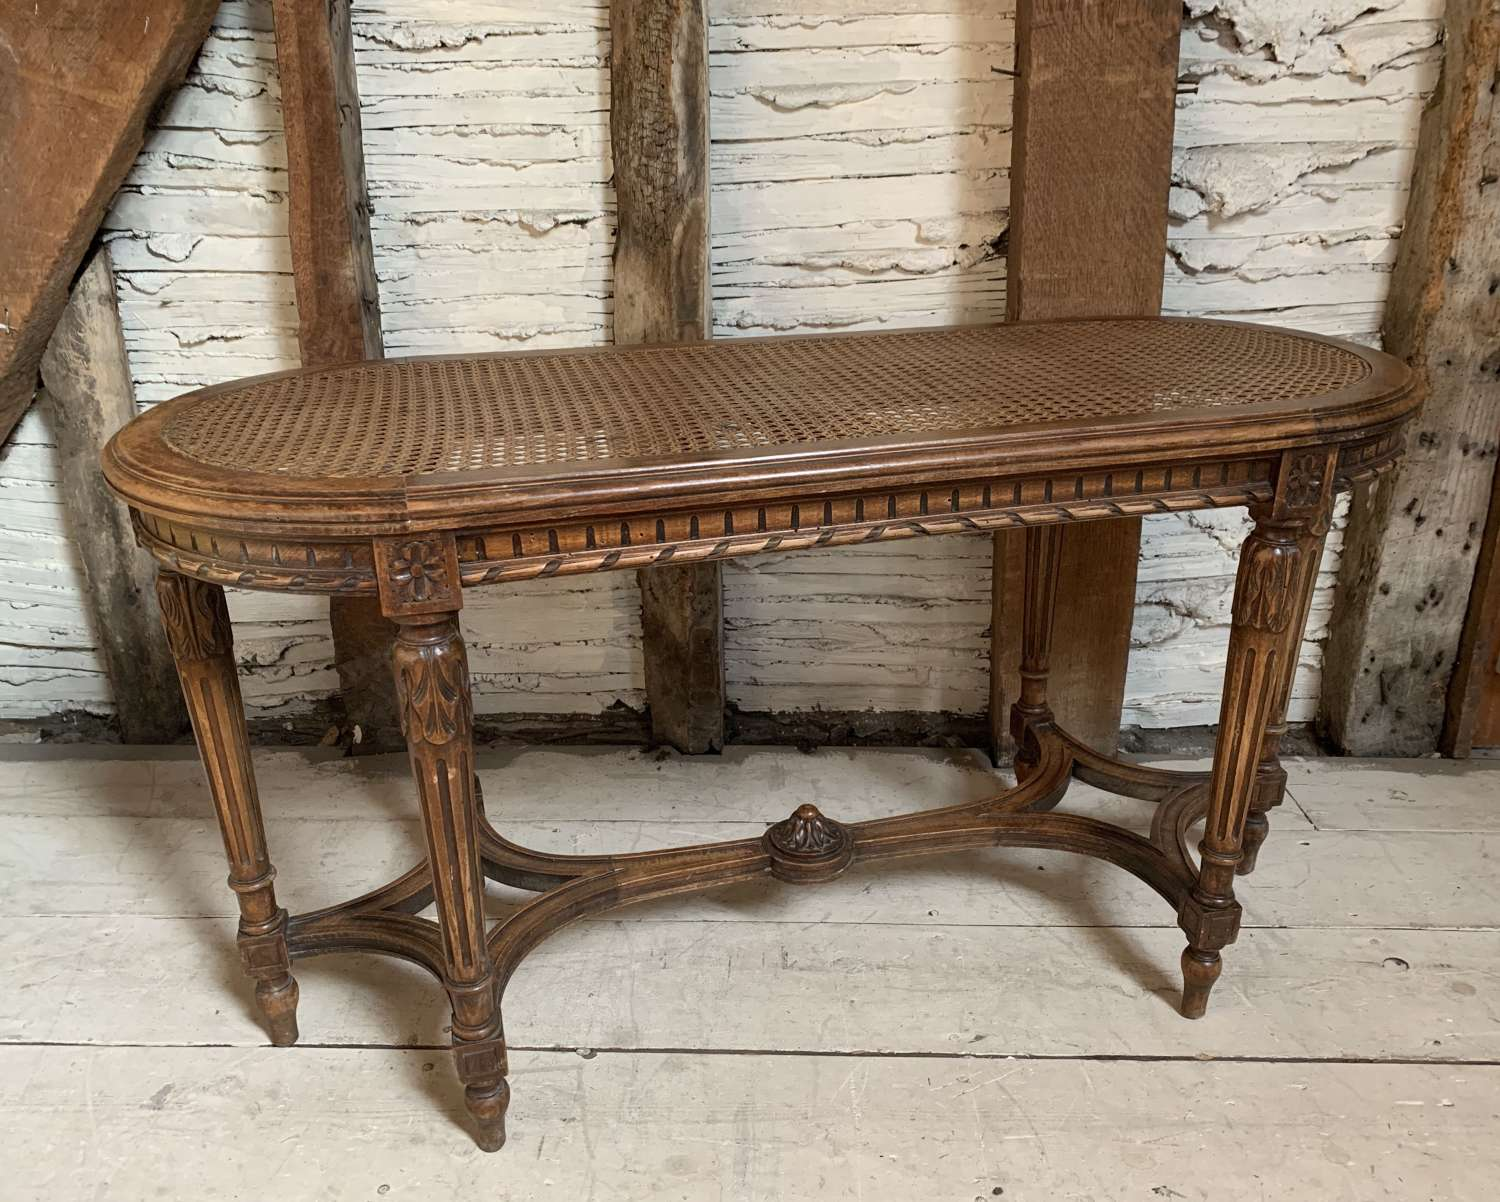 French Louis XVI Style Long Stool with Cane Seat